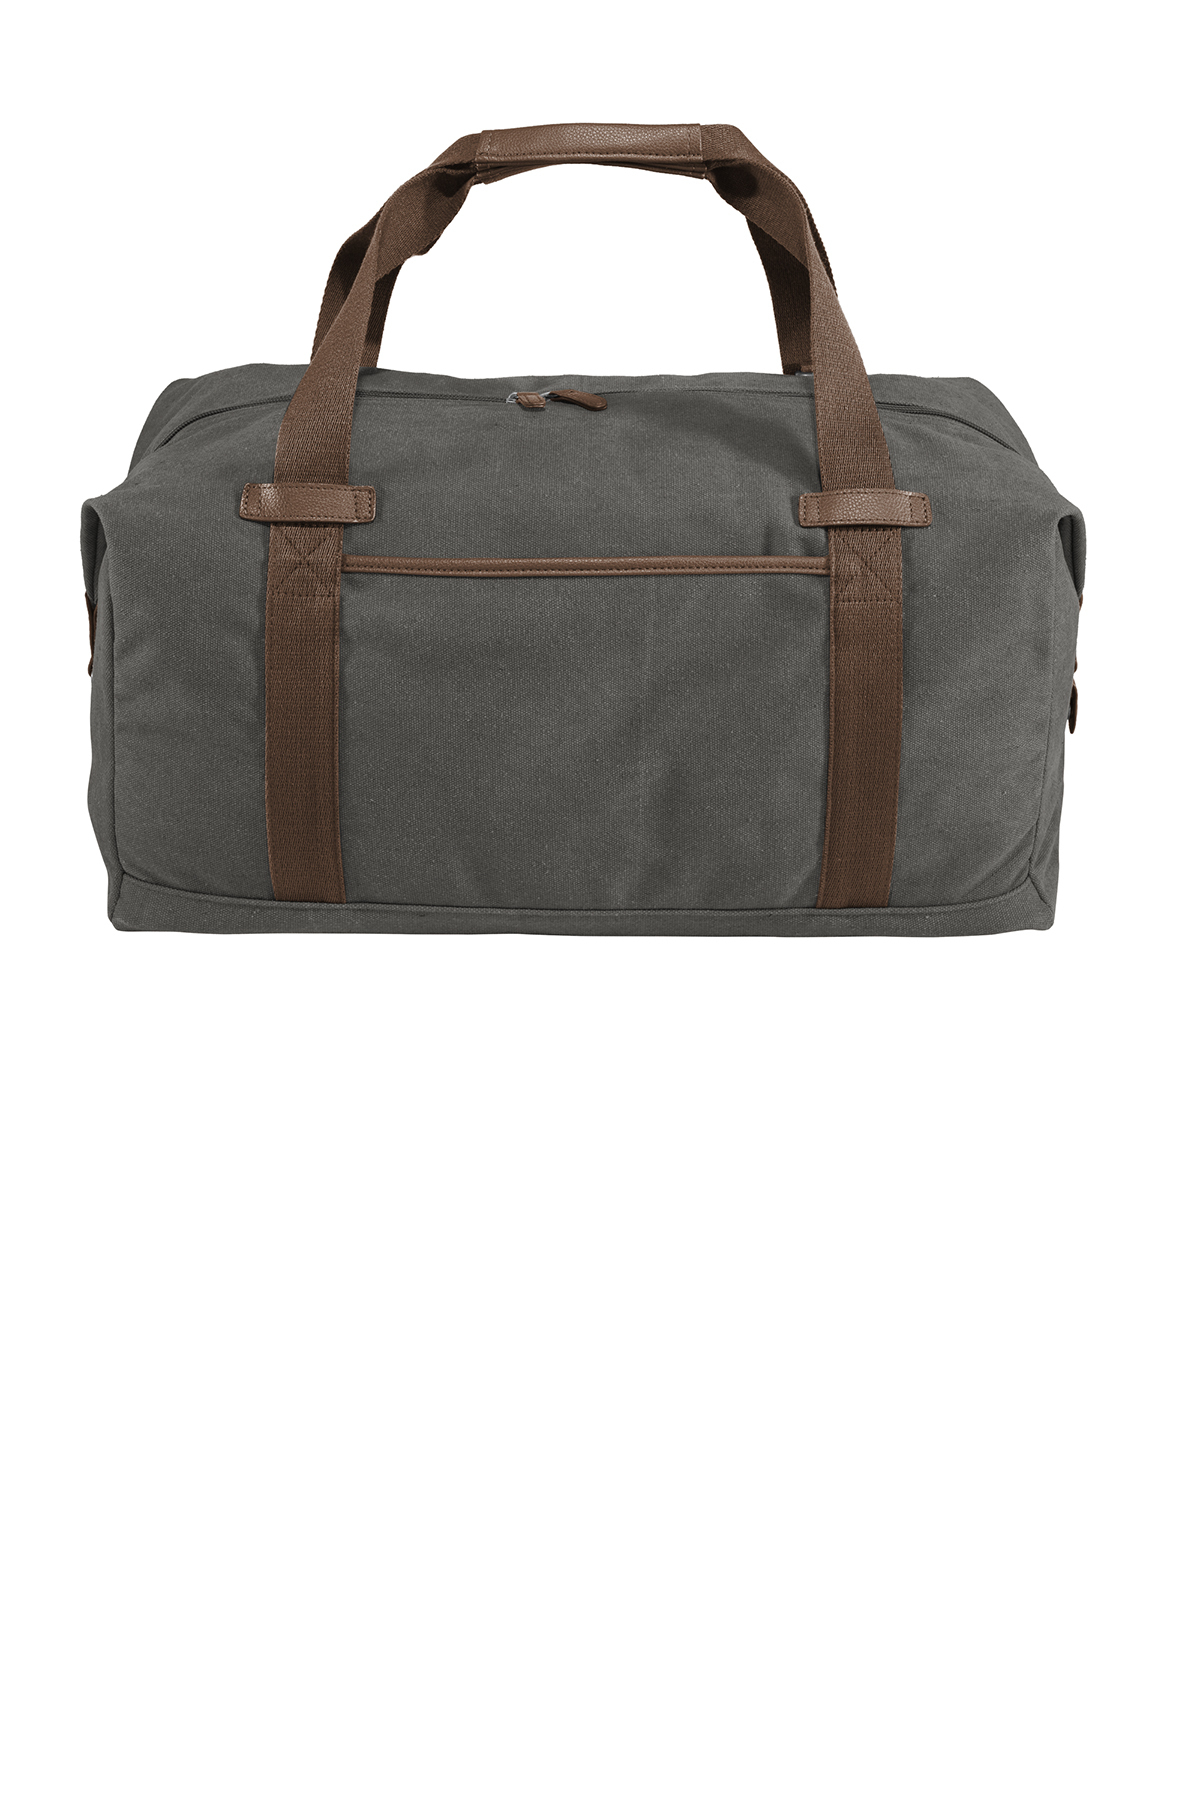 Port Authority BG803 - Cotton Canvas Duffel